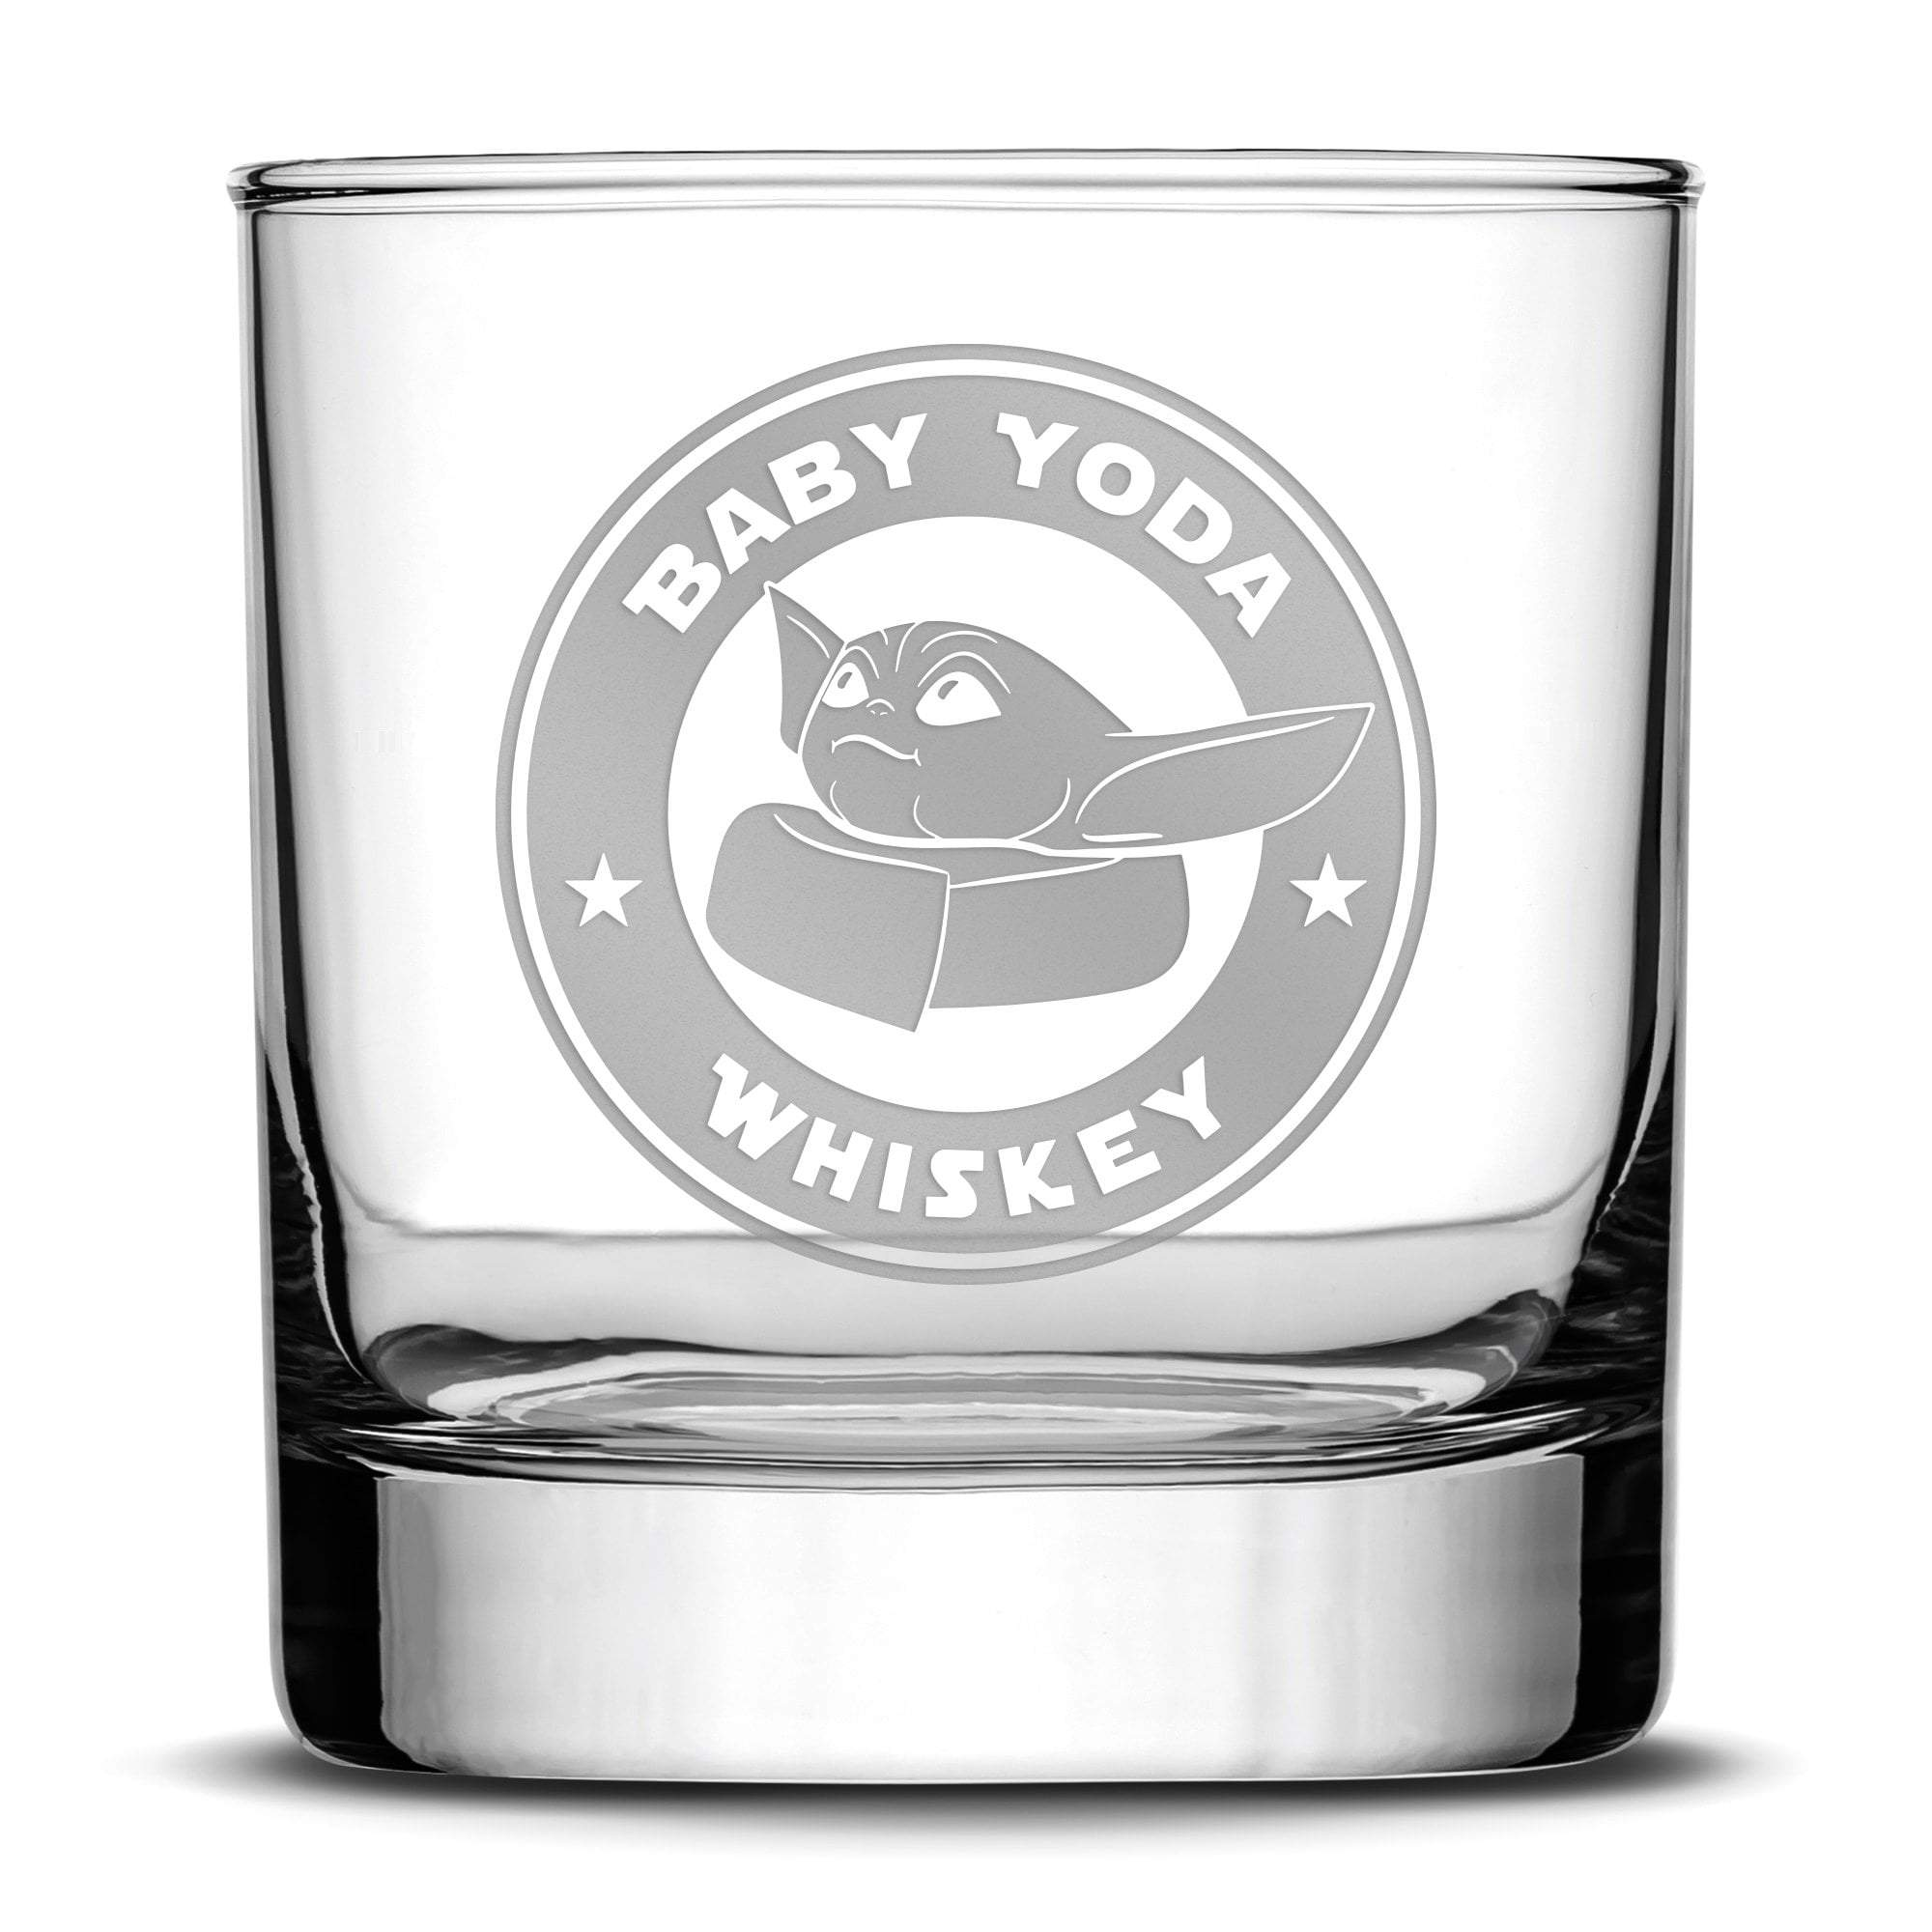 Premium Whiskey Glass, Mandalorian, Baby Yoda Whiskey, 11oz by Integrity Bottles